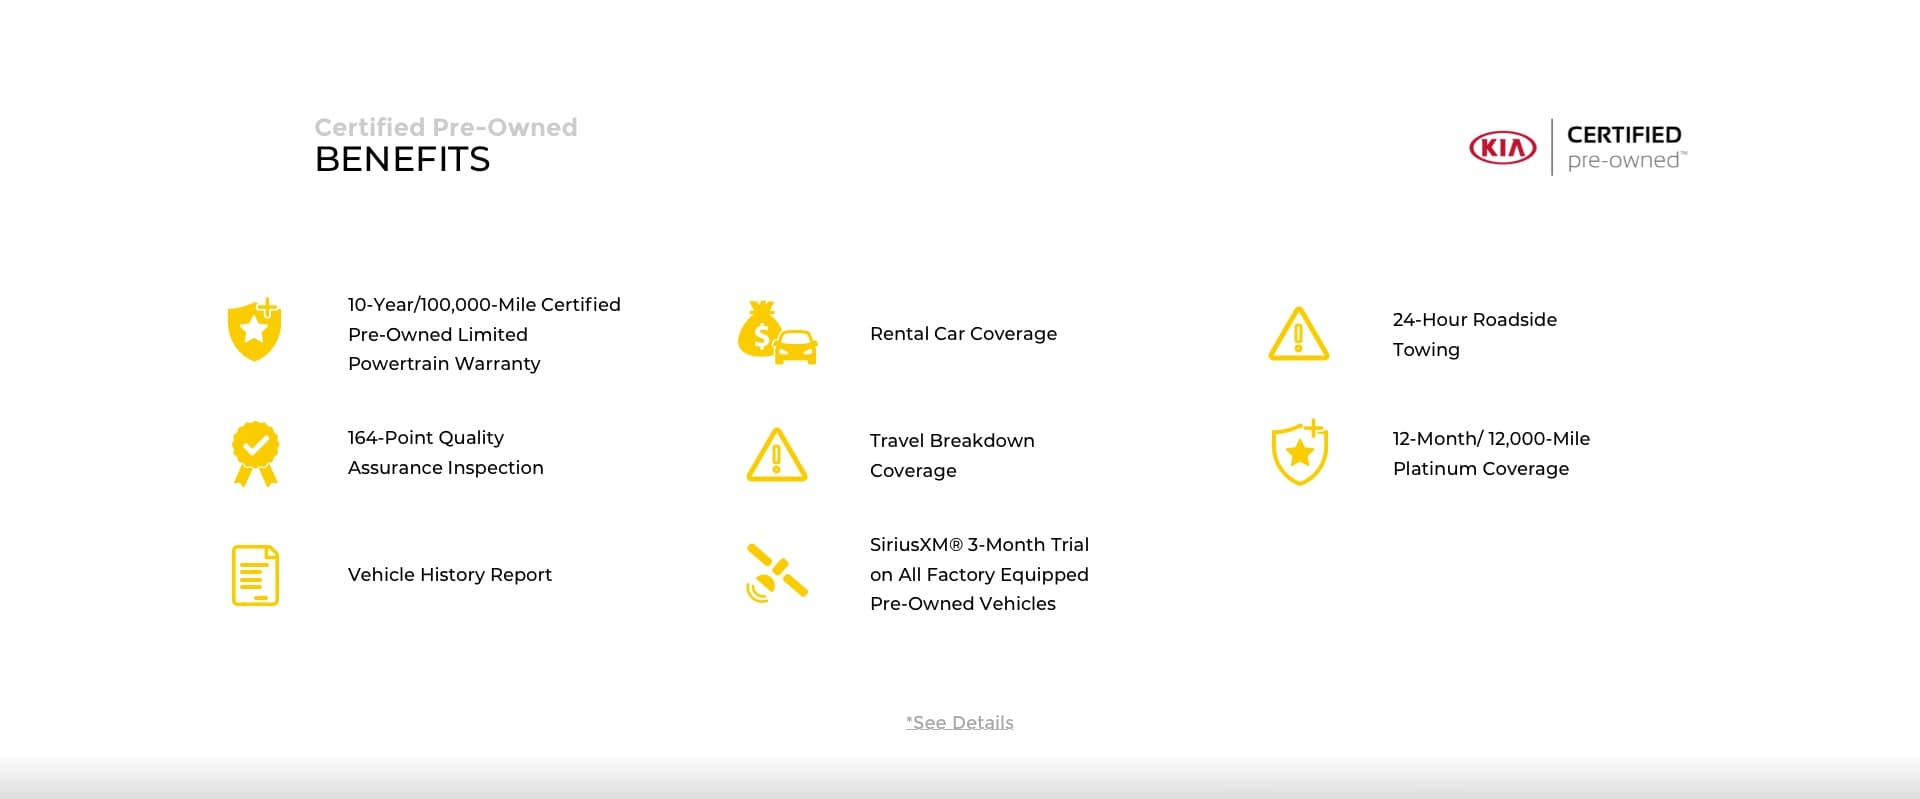 Hyundai Certified Pre-Owned Benefits Slide